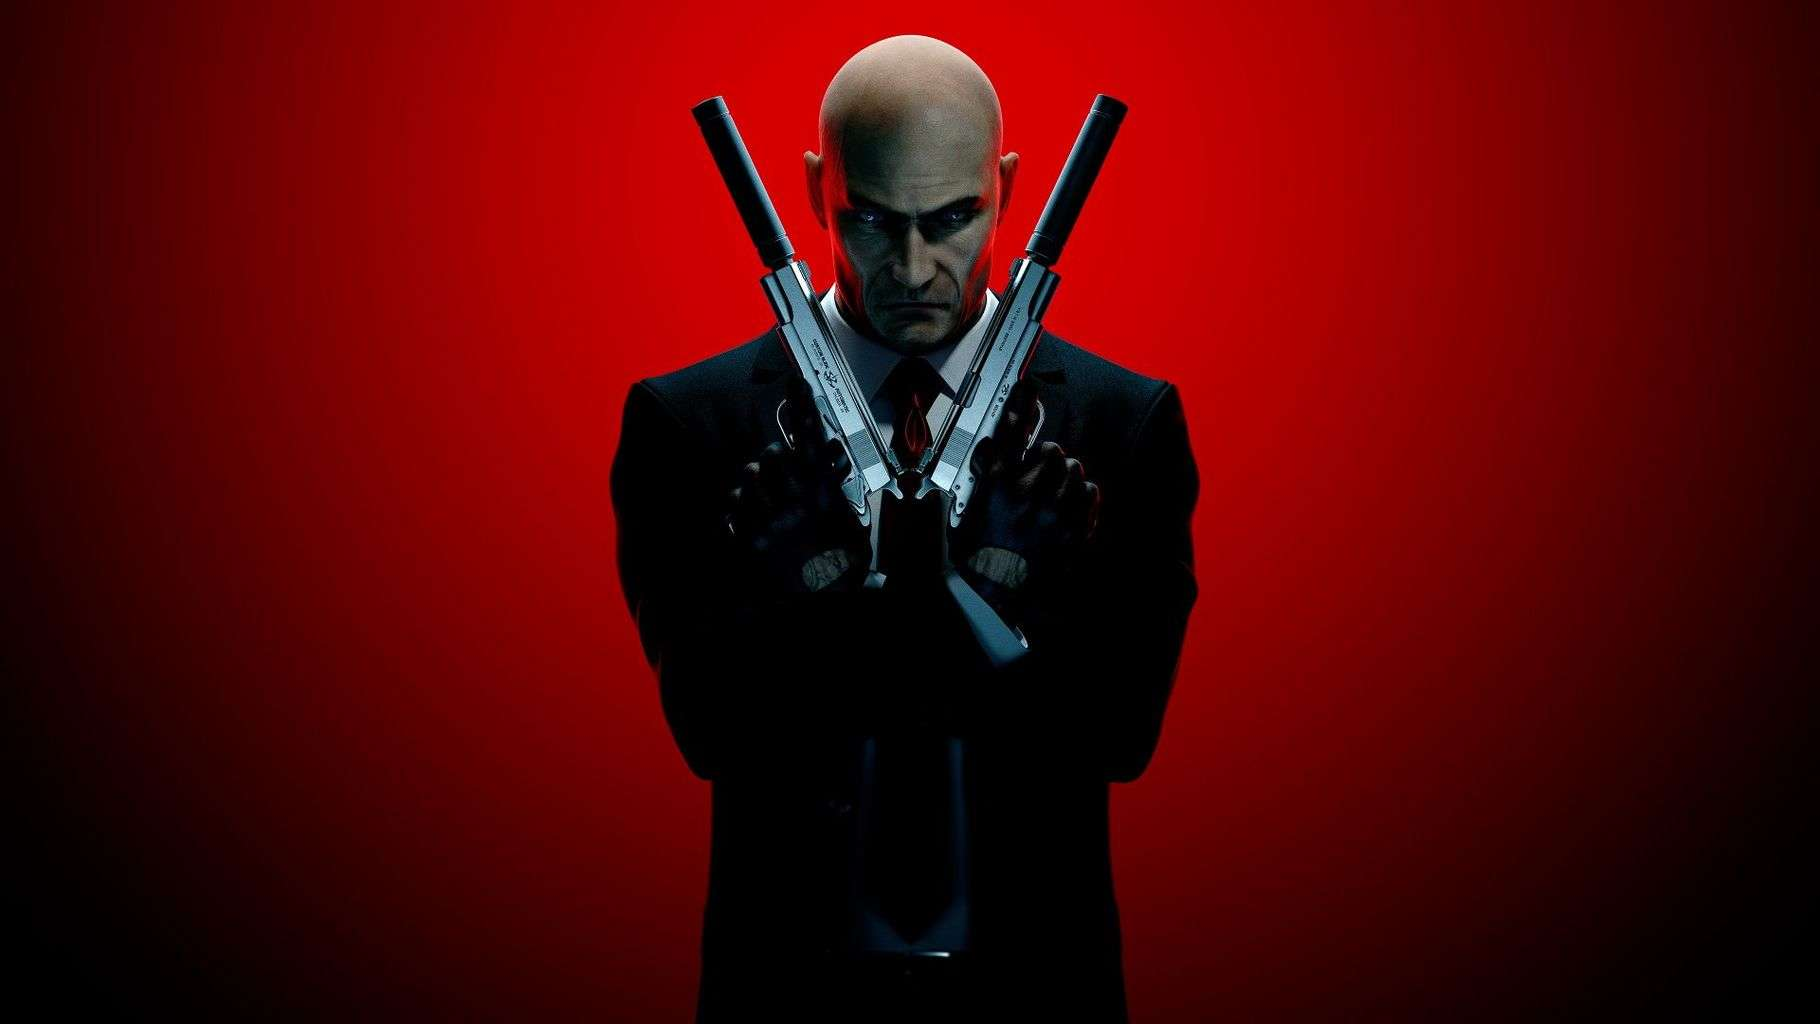 Fall Season Wallpapers For Iphone Hitman Video Game Will Soon Support Hdr On Xbox One S